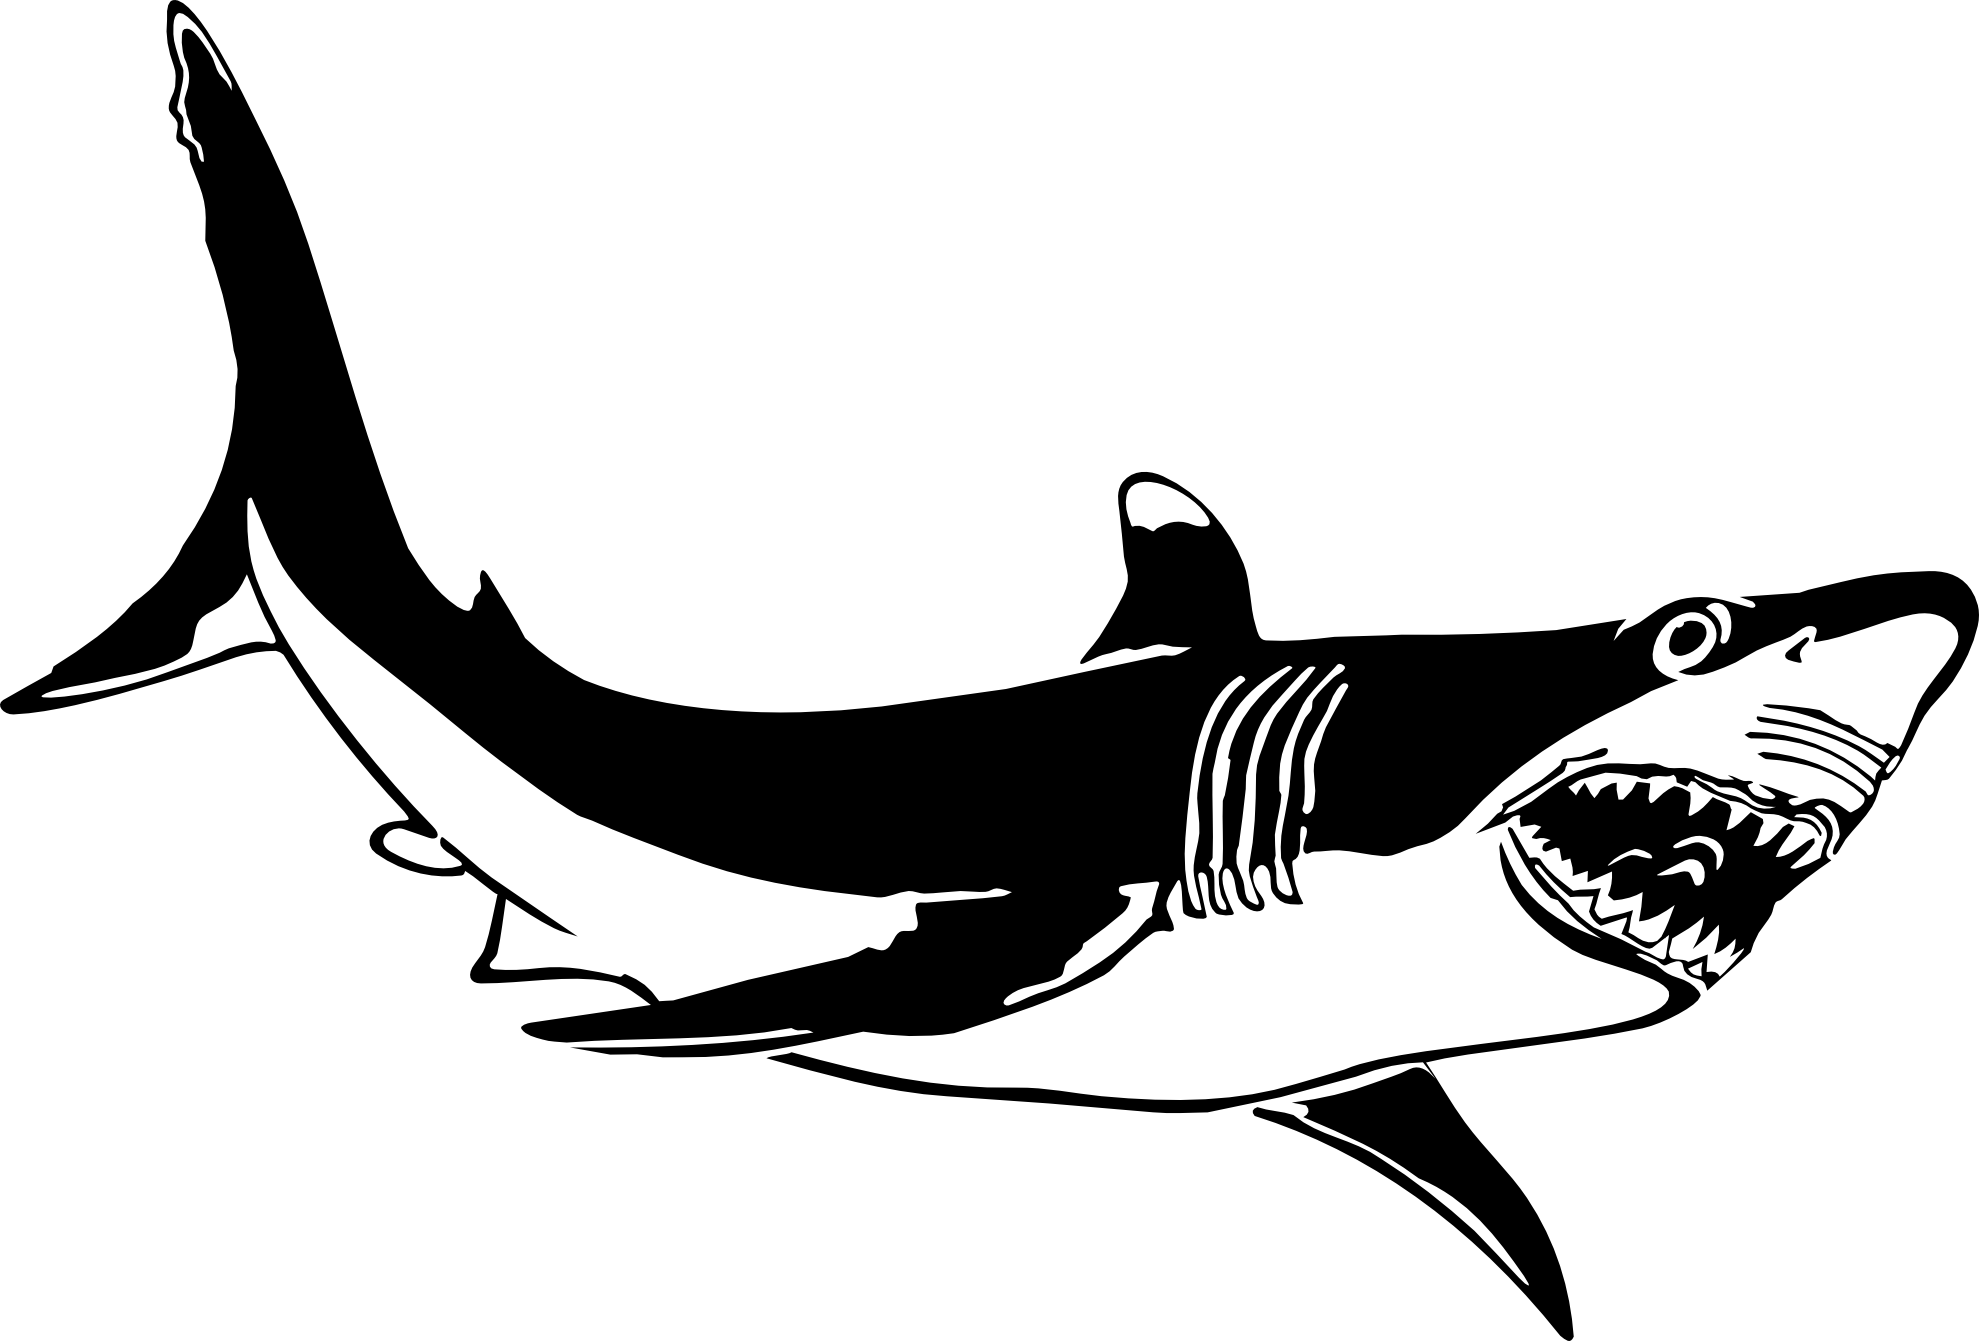 hight resolution of great white shark clipart black and white clipart library free